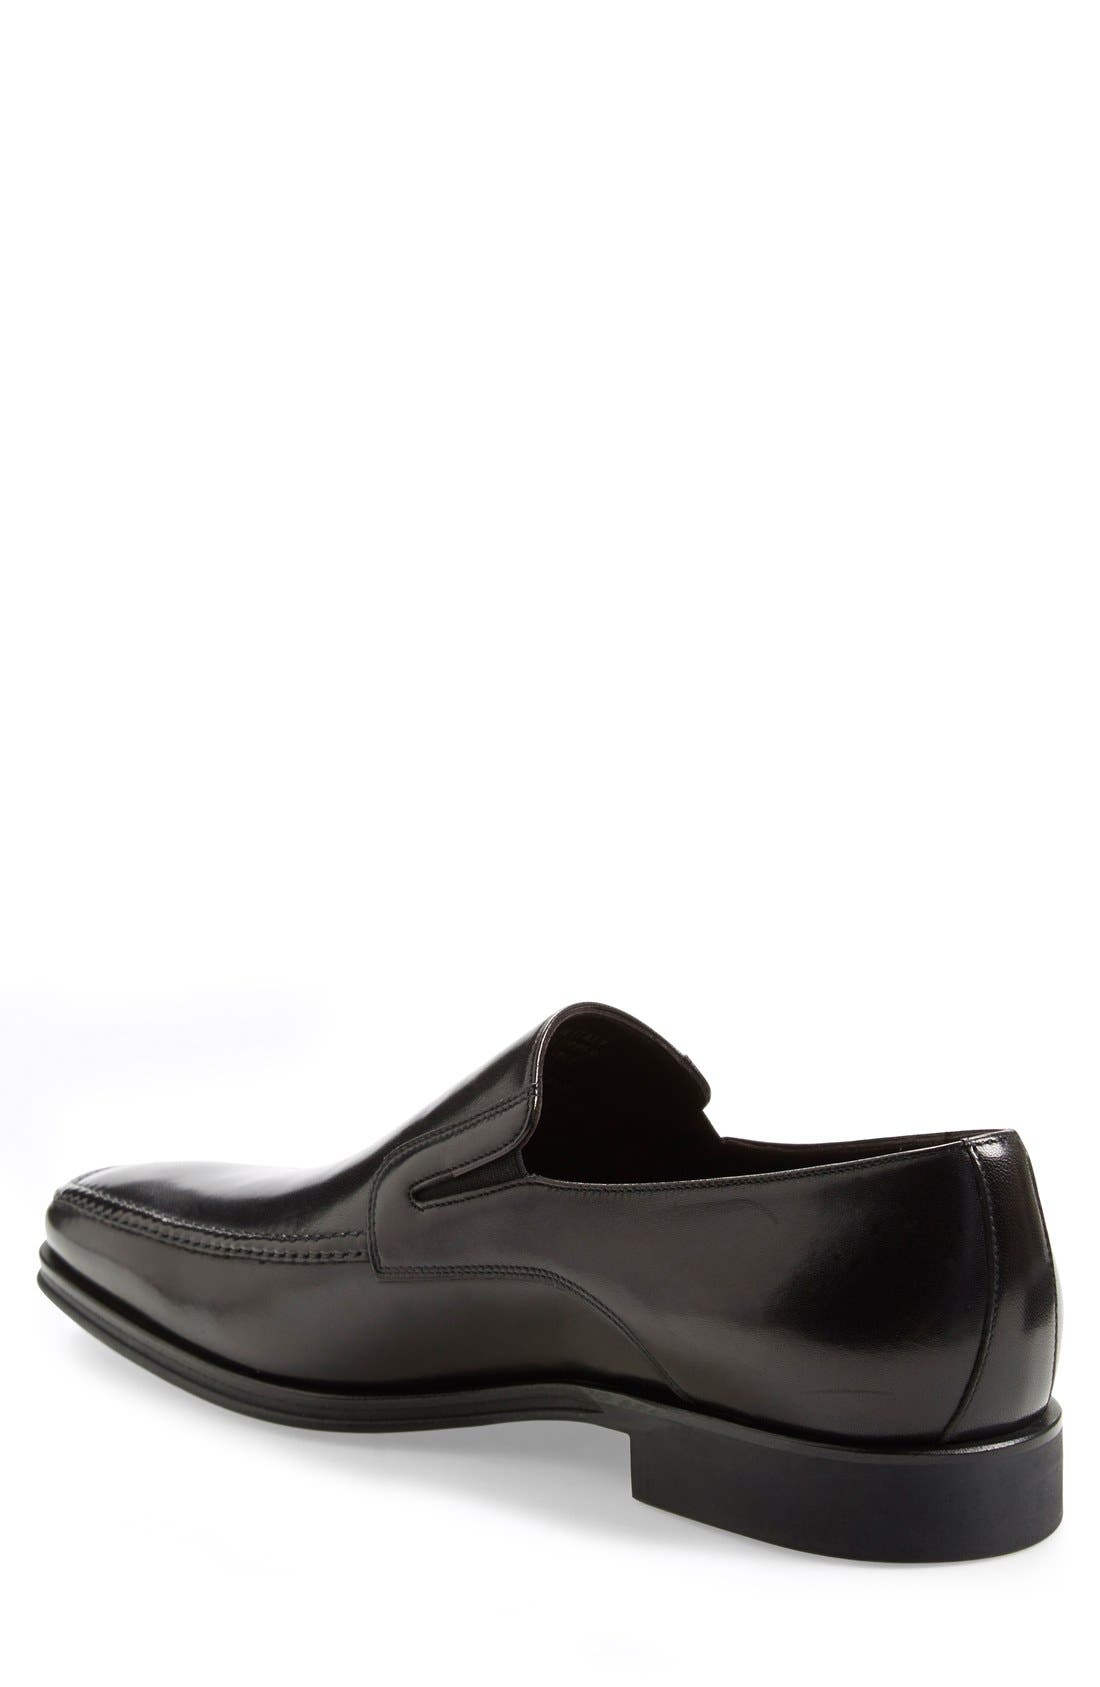 Alternate Image 2  - Monte Rosso Lucca Nappa Leather Loafer (Men)